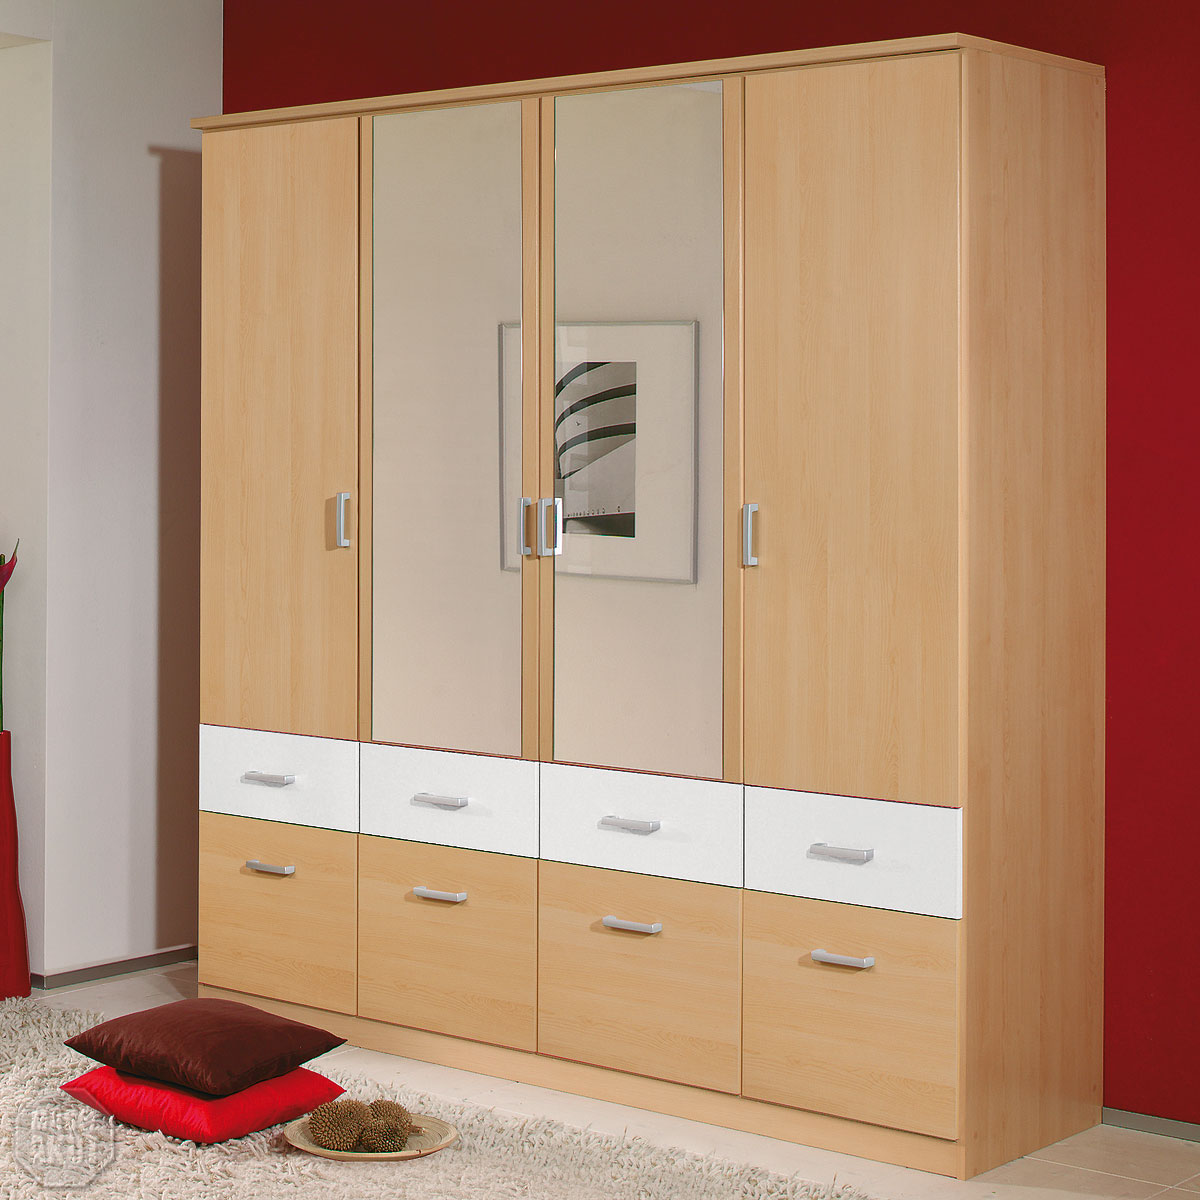 kleiderschrank bremen schrank w scheschrank in berg ahorn wei spiegel 181 cm ebay. Black Bedroom Furniture Sets. Home Design Ideas